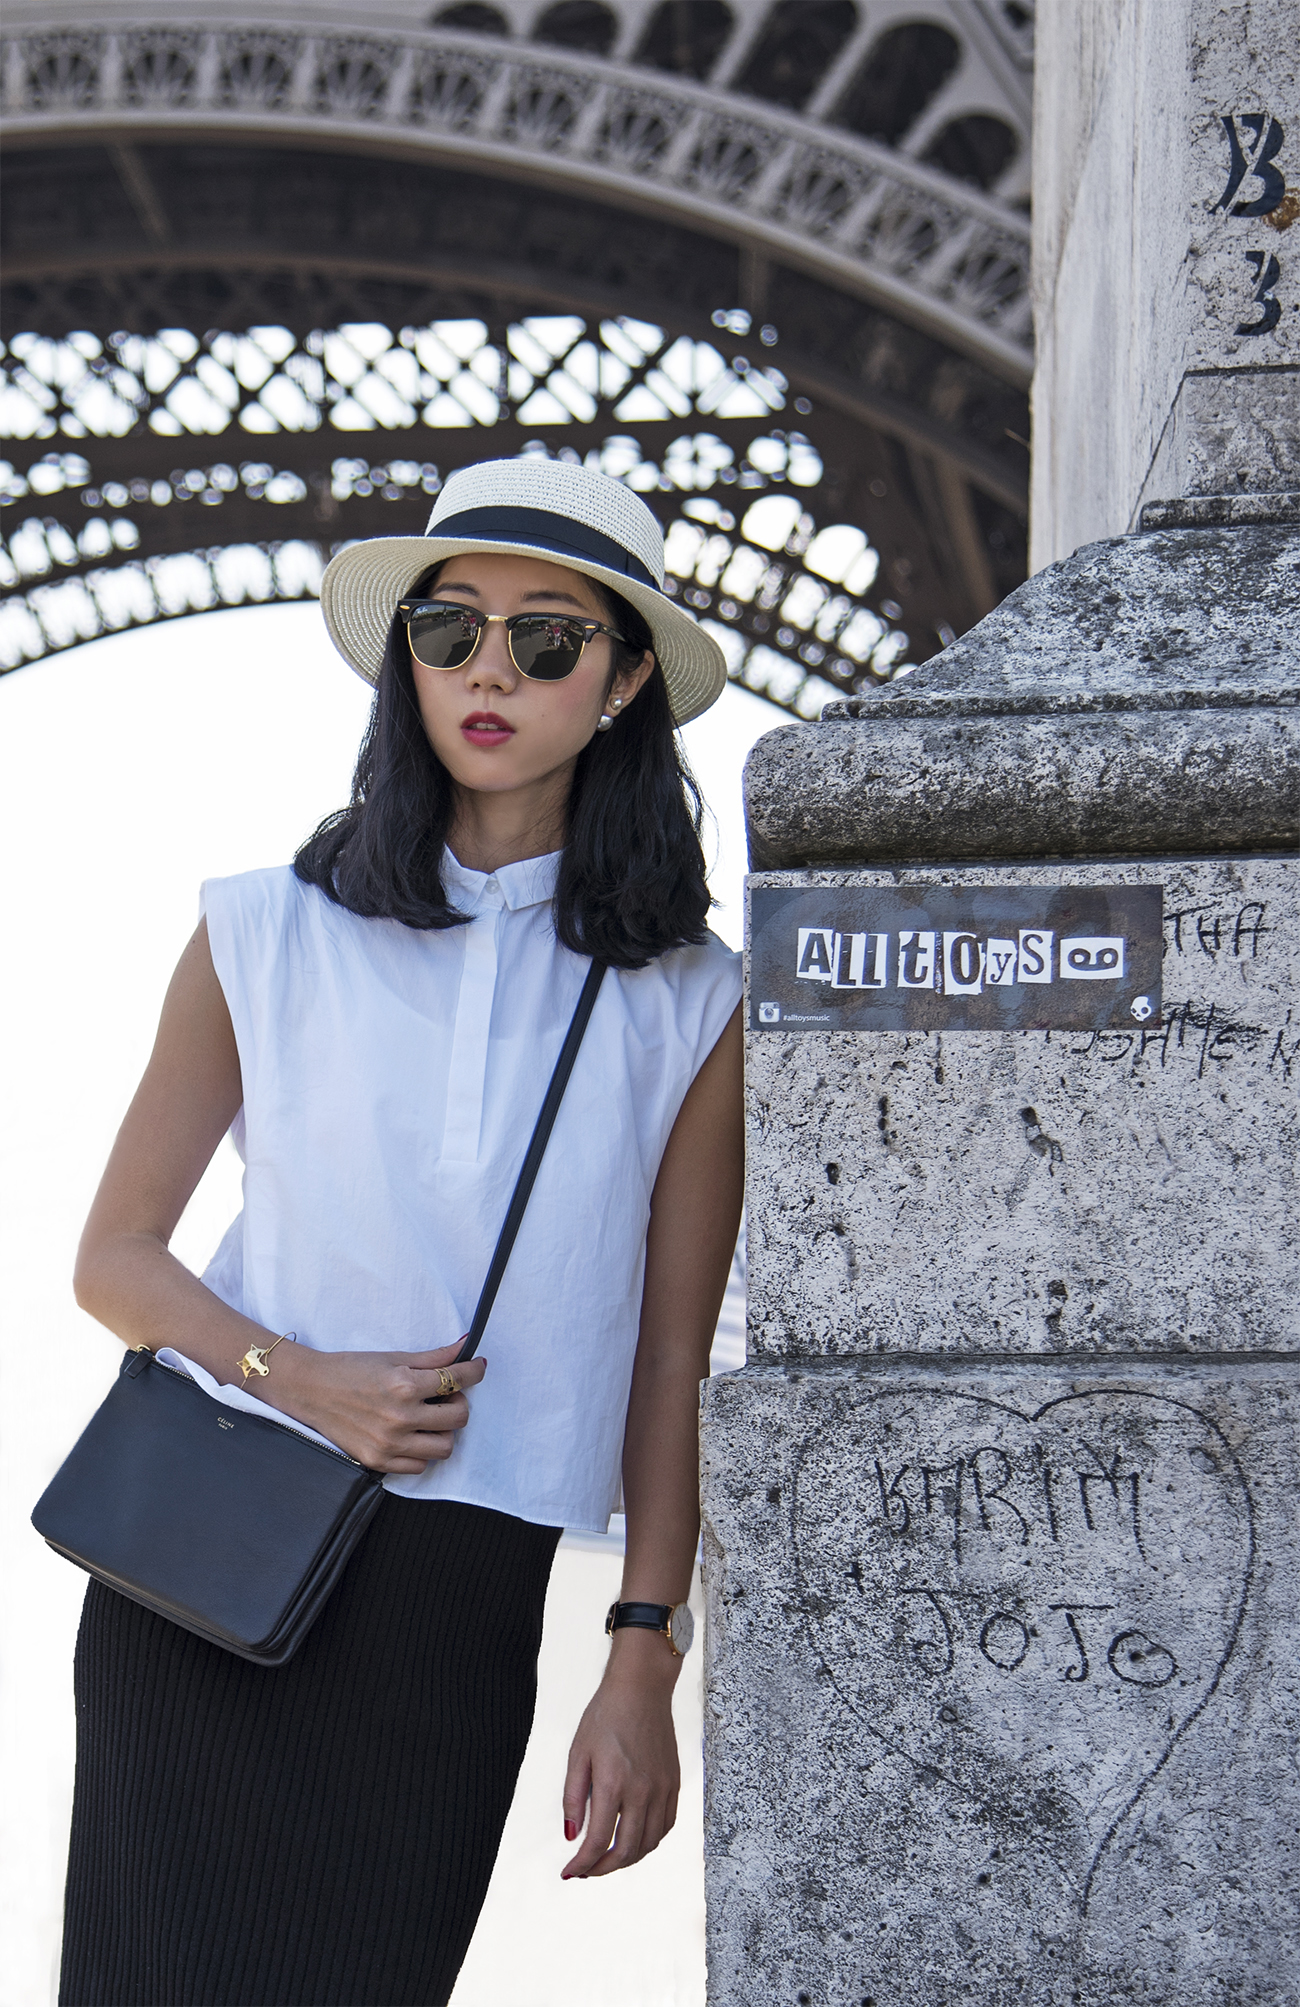 Parisian_Summer_3